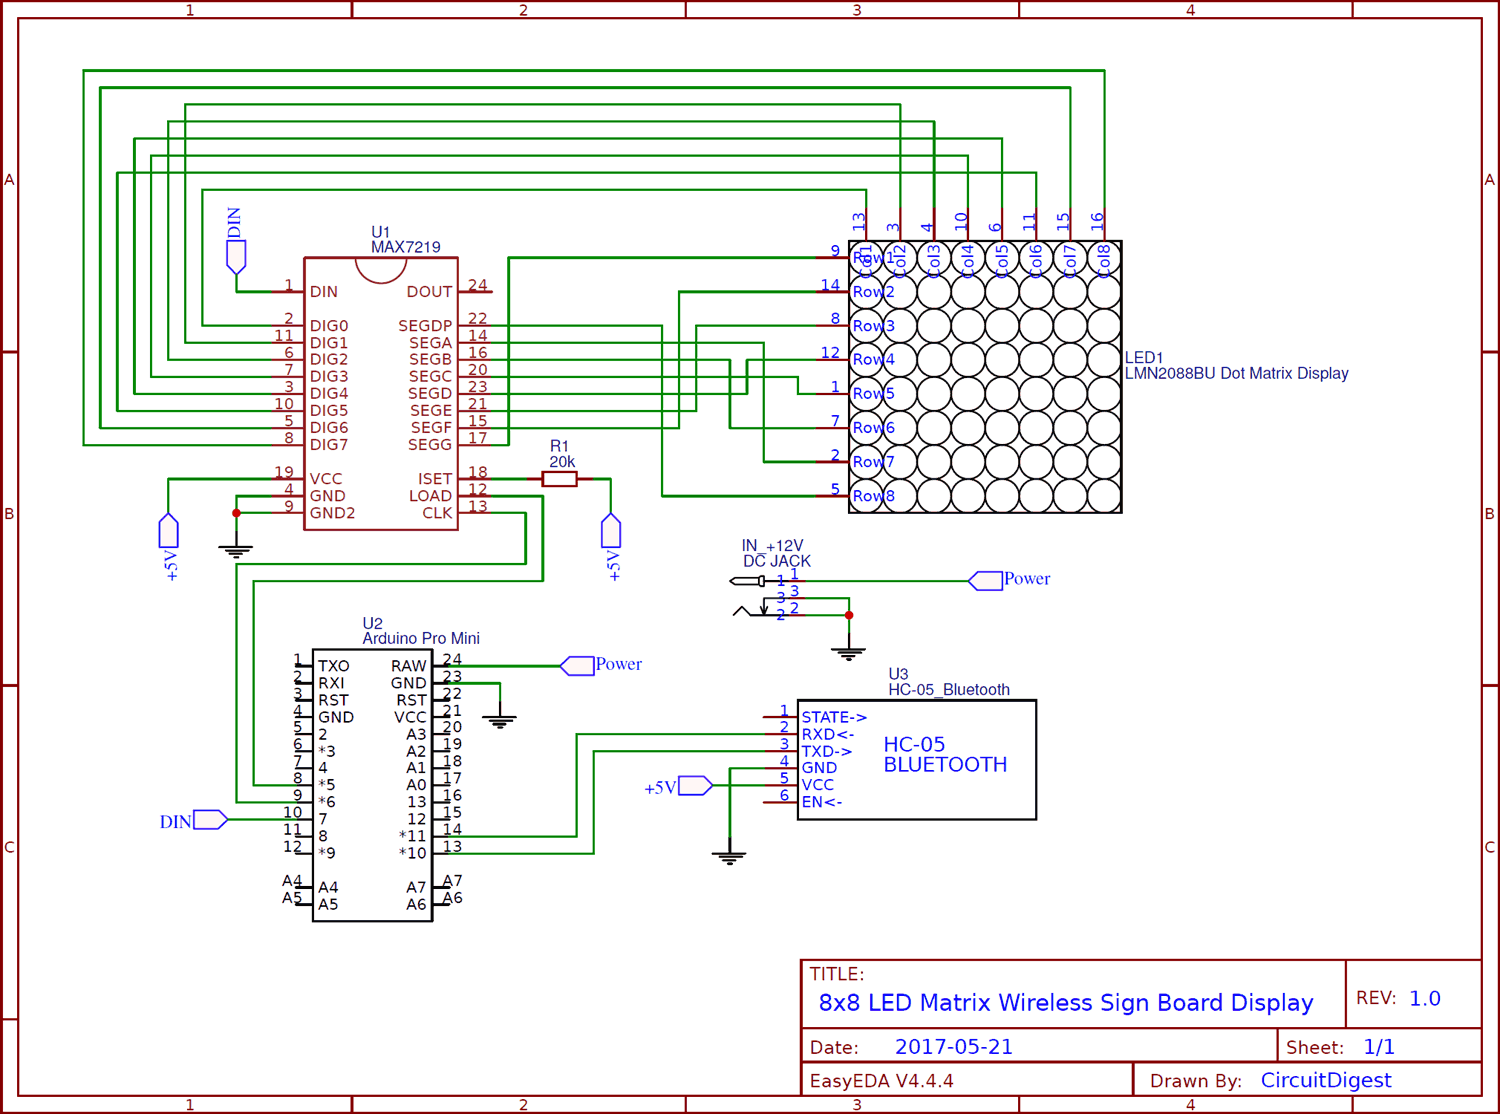 medium resolution of circuit diagram for bluetooth controlled 8x8 led wireless sign board display using arduino